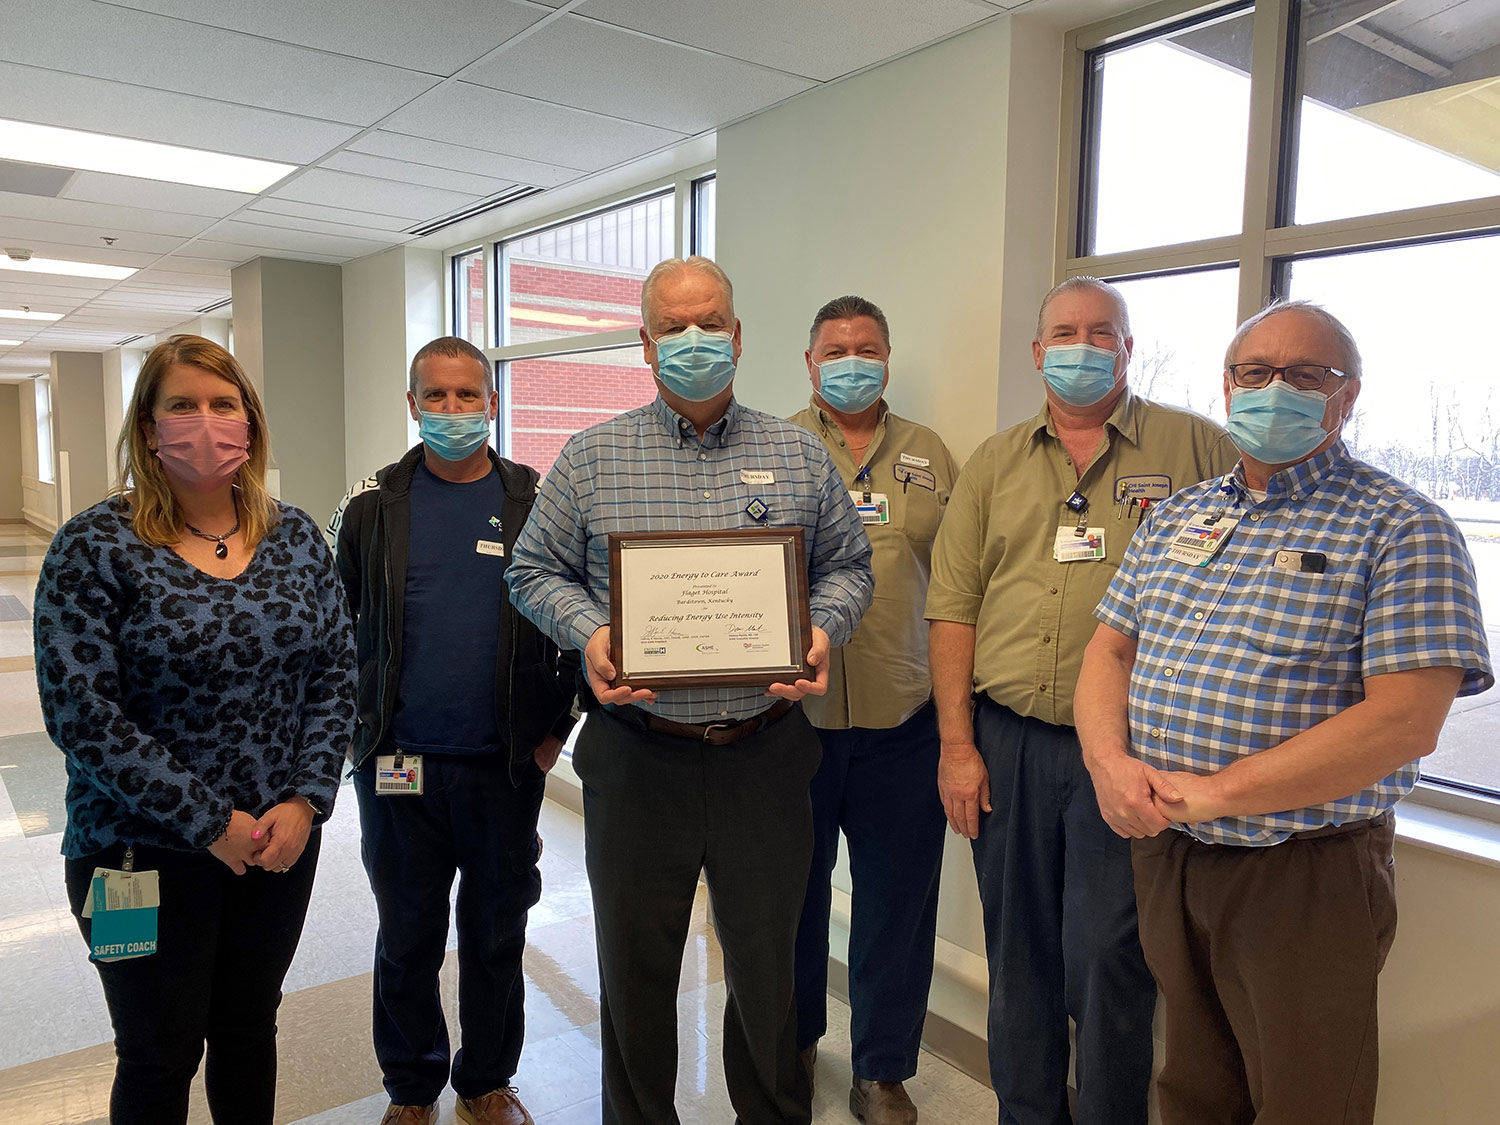 Flaget Memorial Hospital Medical Office Building Receives Energy to Care Award